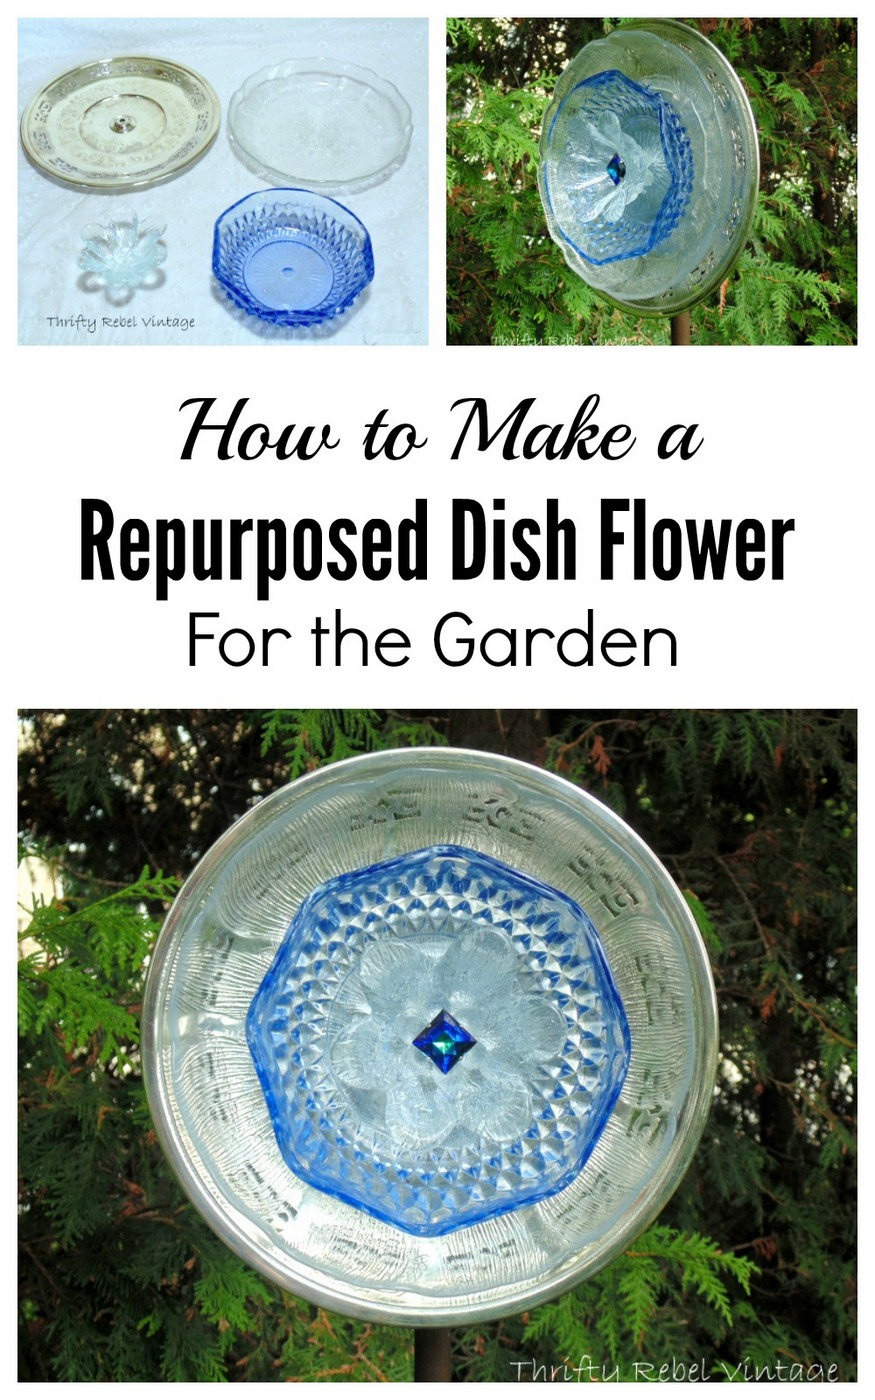 Add some whimsy to your garden by making a garden art dish flower using thrifted... -  Add some whimsy to your garden by making a garden art dish flower using thrifted and repurposed dishes. #gardenart @plateflower #diyflower #diygardenflower #junkflower  Source by debikm  -